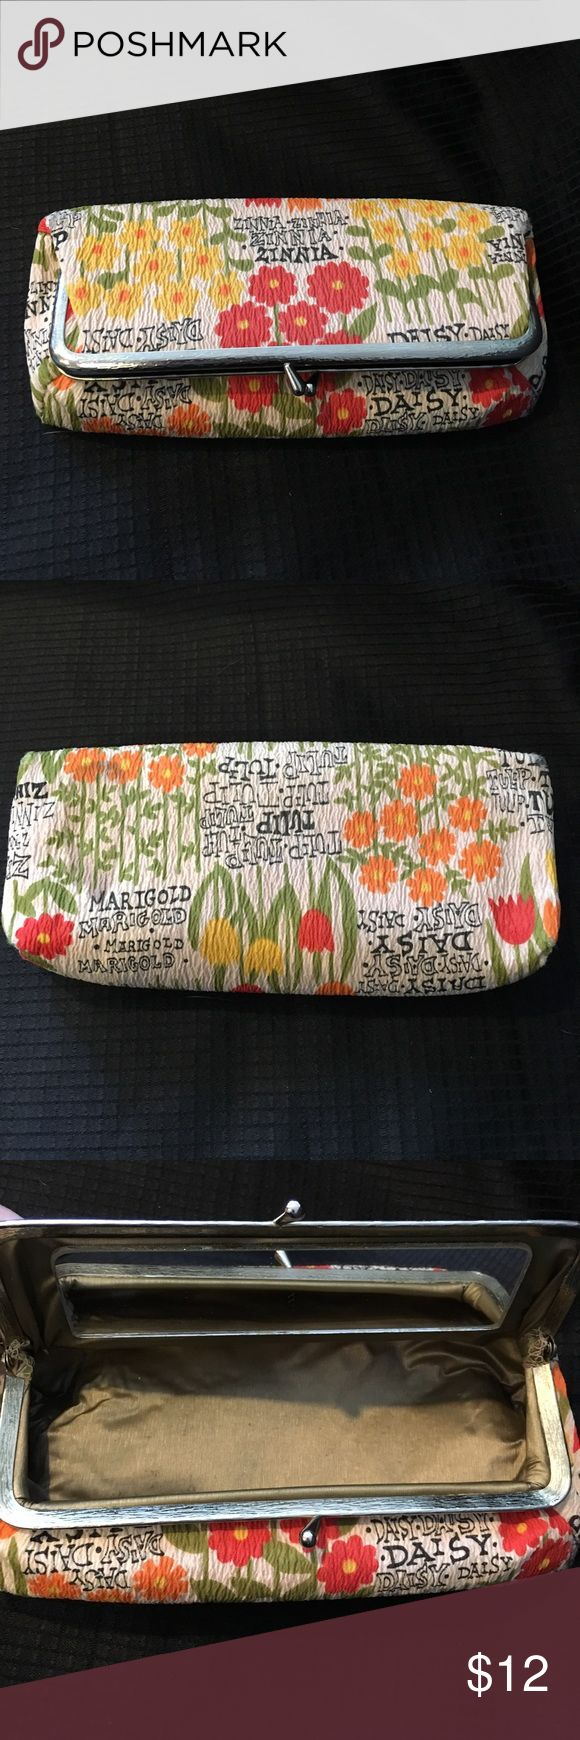 🍒 2 for $12 Mirrored Flower Makeup/Cosmetic Bag Mirrored Flower Makeup Bag. Mirror is in tacked. It snaps closed. There are flowers decorating the outside. Measures approx 8x4x3 inches. Please see last pic for stain on bottom. It's less noticeable in person. Unknown Bags Cosmetic Bags & Cases